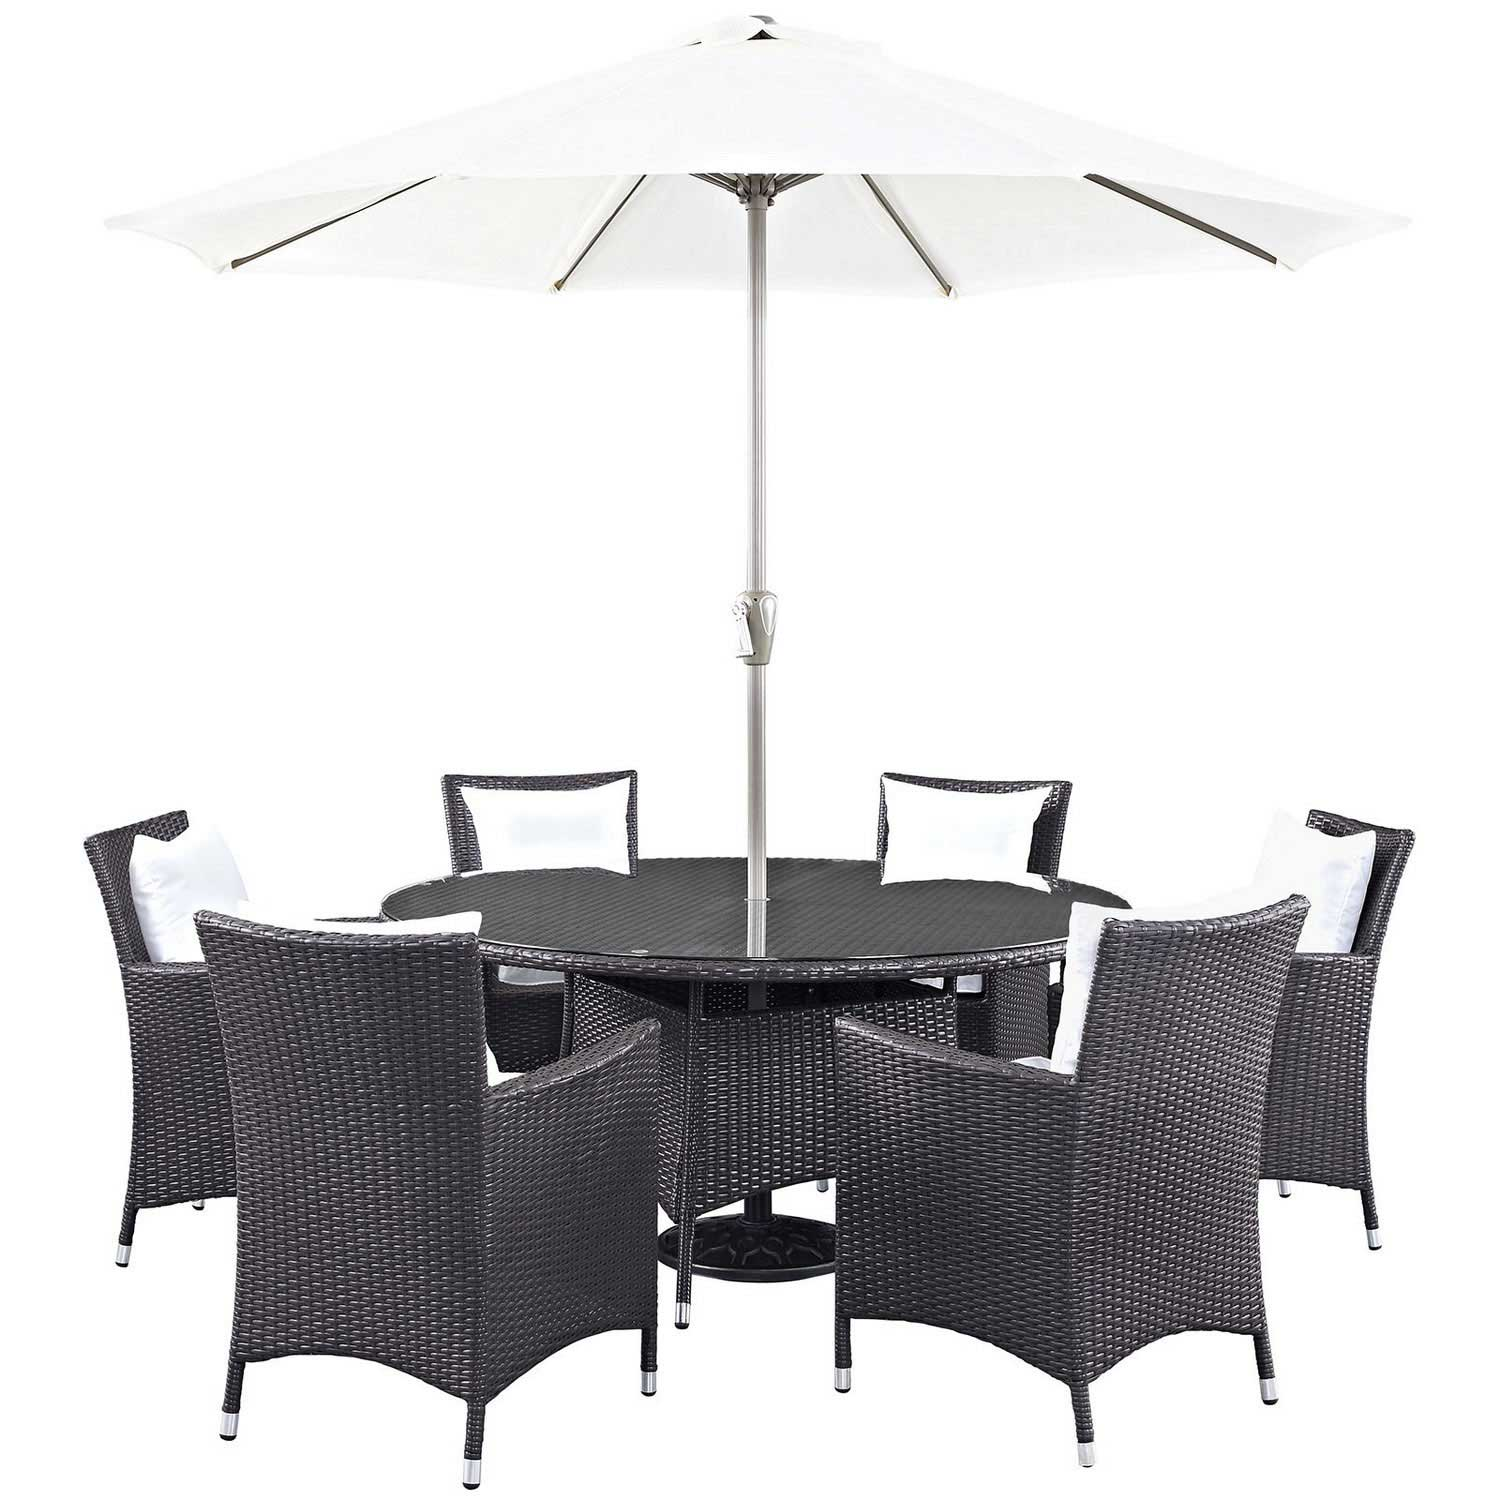 Modway Convene 8 Piece Outdoor Patio Dining Set - Espresso White